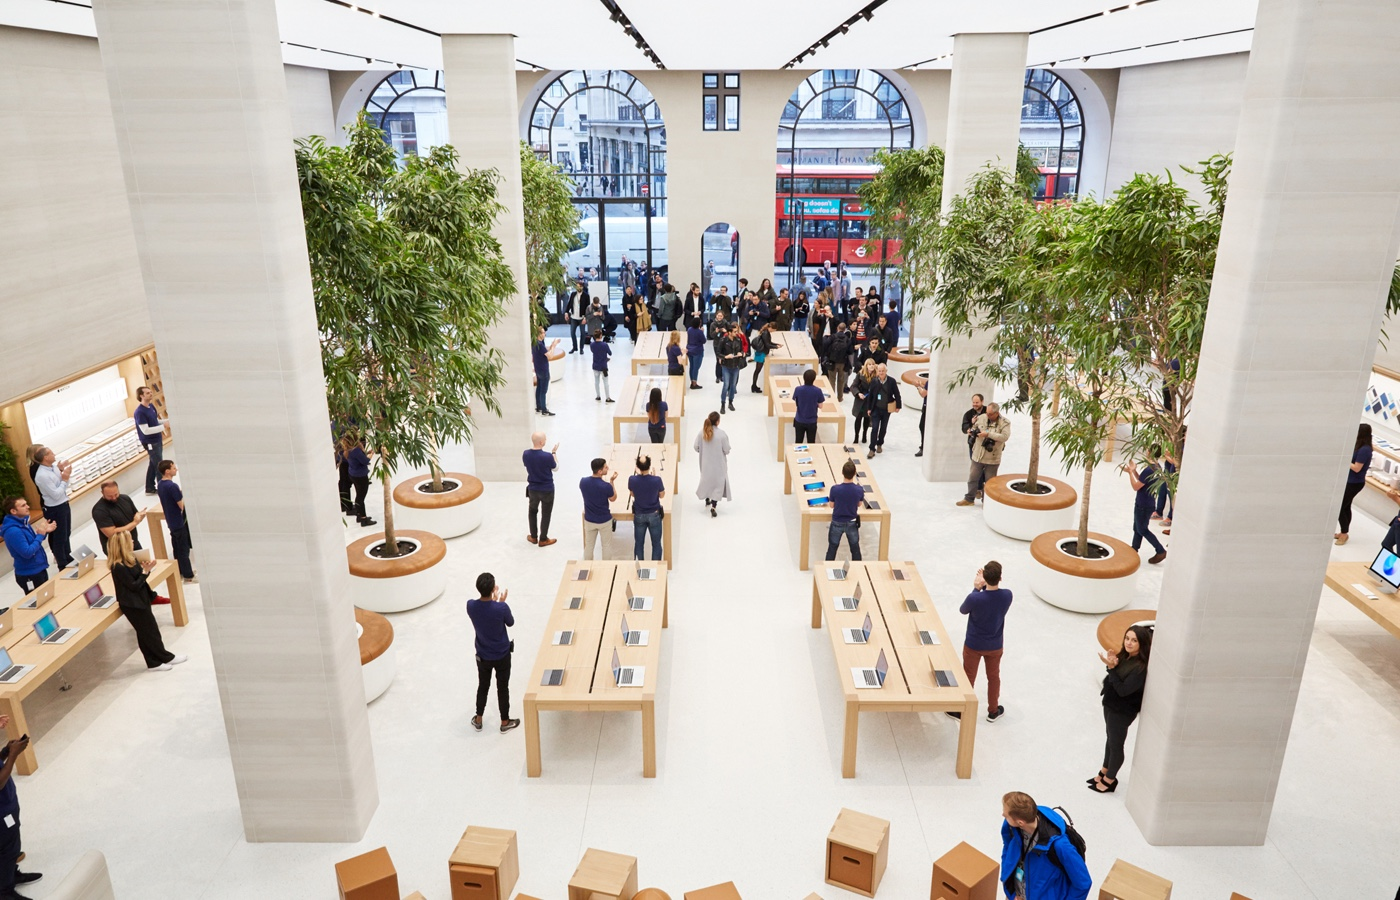 real-time sales at an Apple store